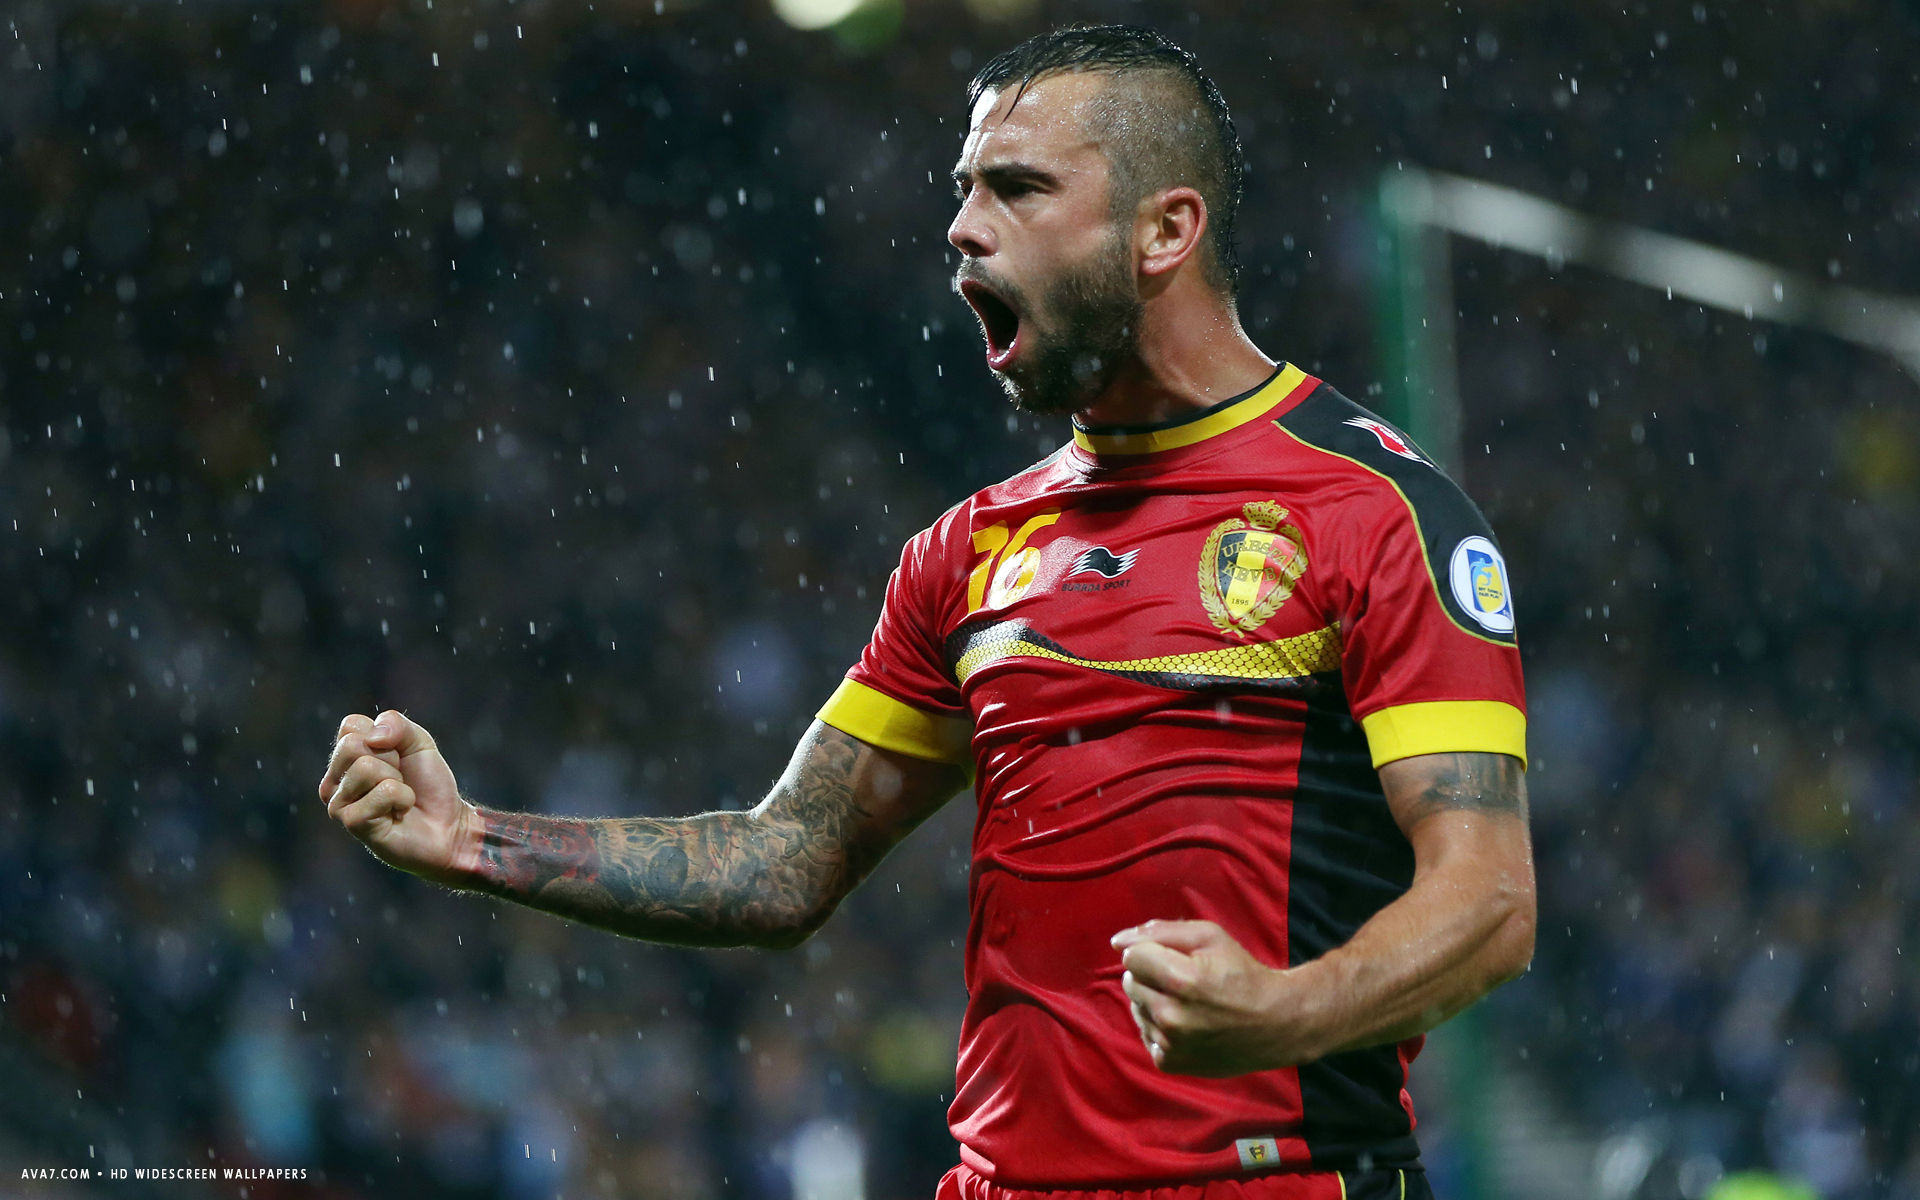 steven defour football player hd widescreen wallpaper